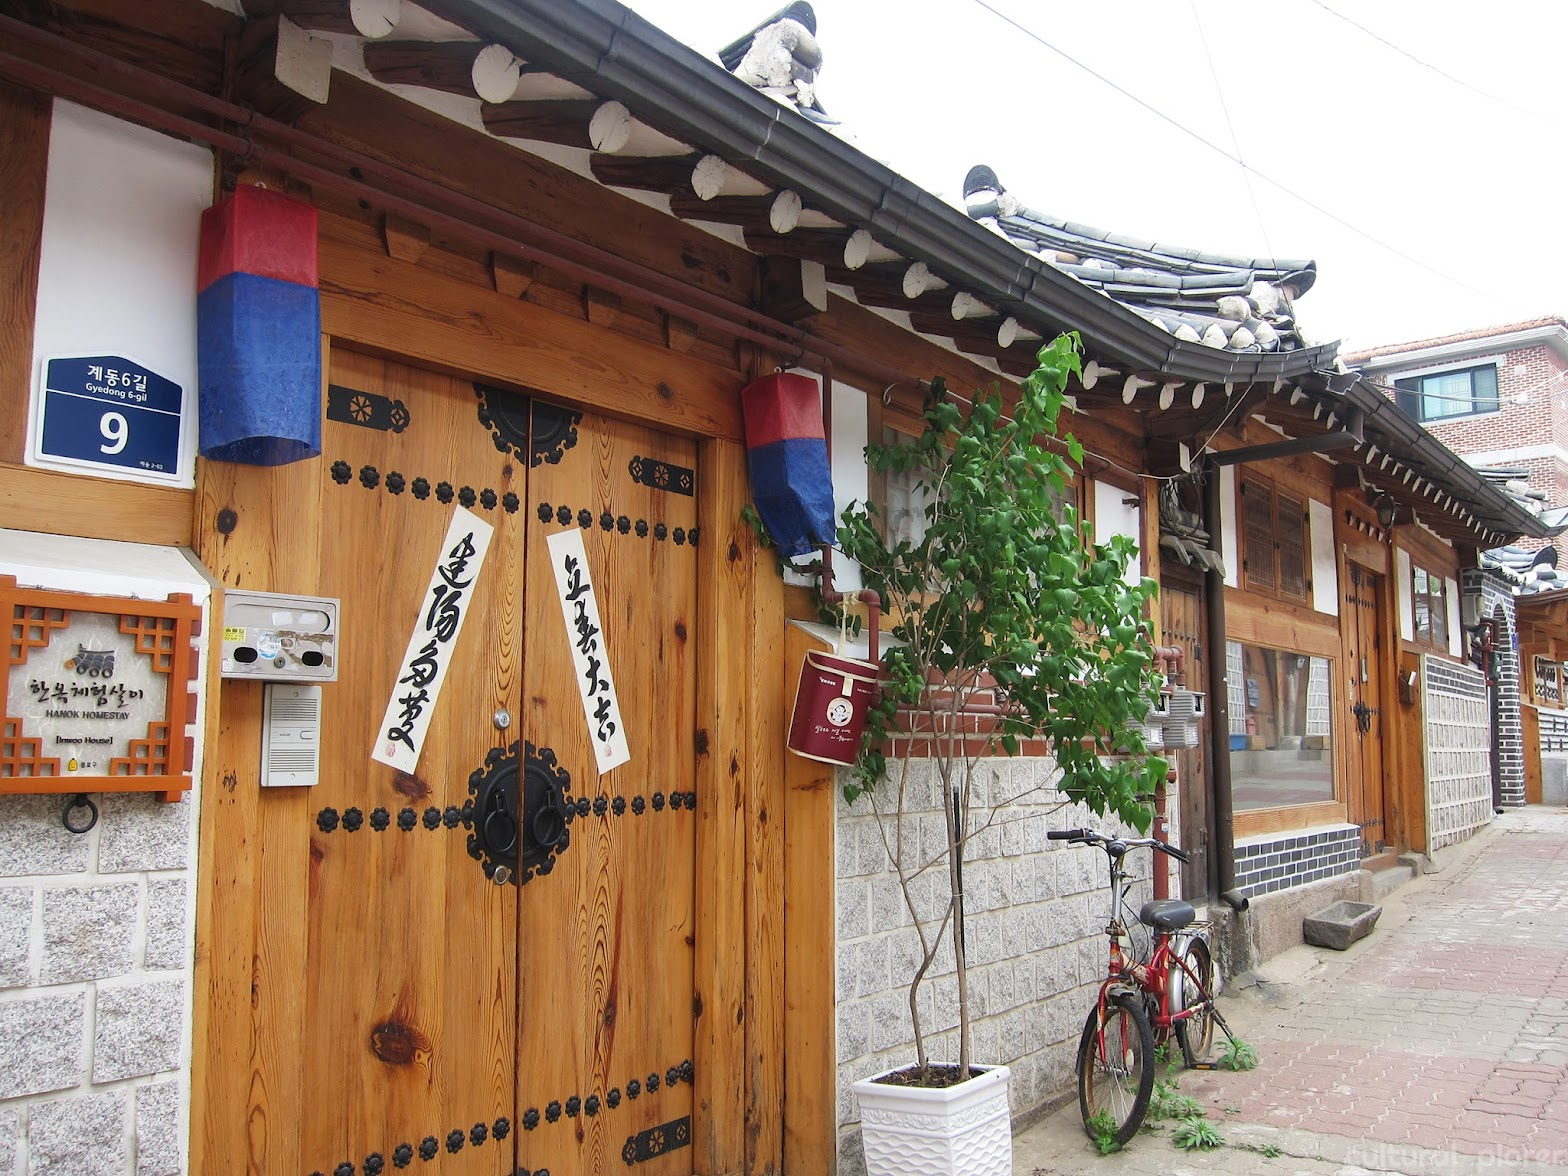 Bukchon Hanok Village Alley